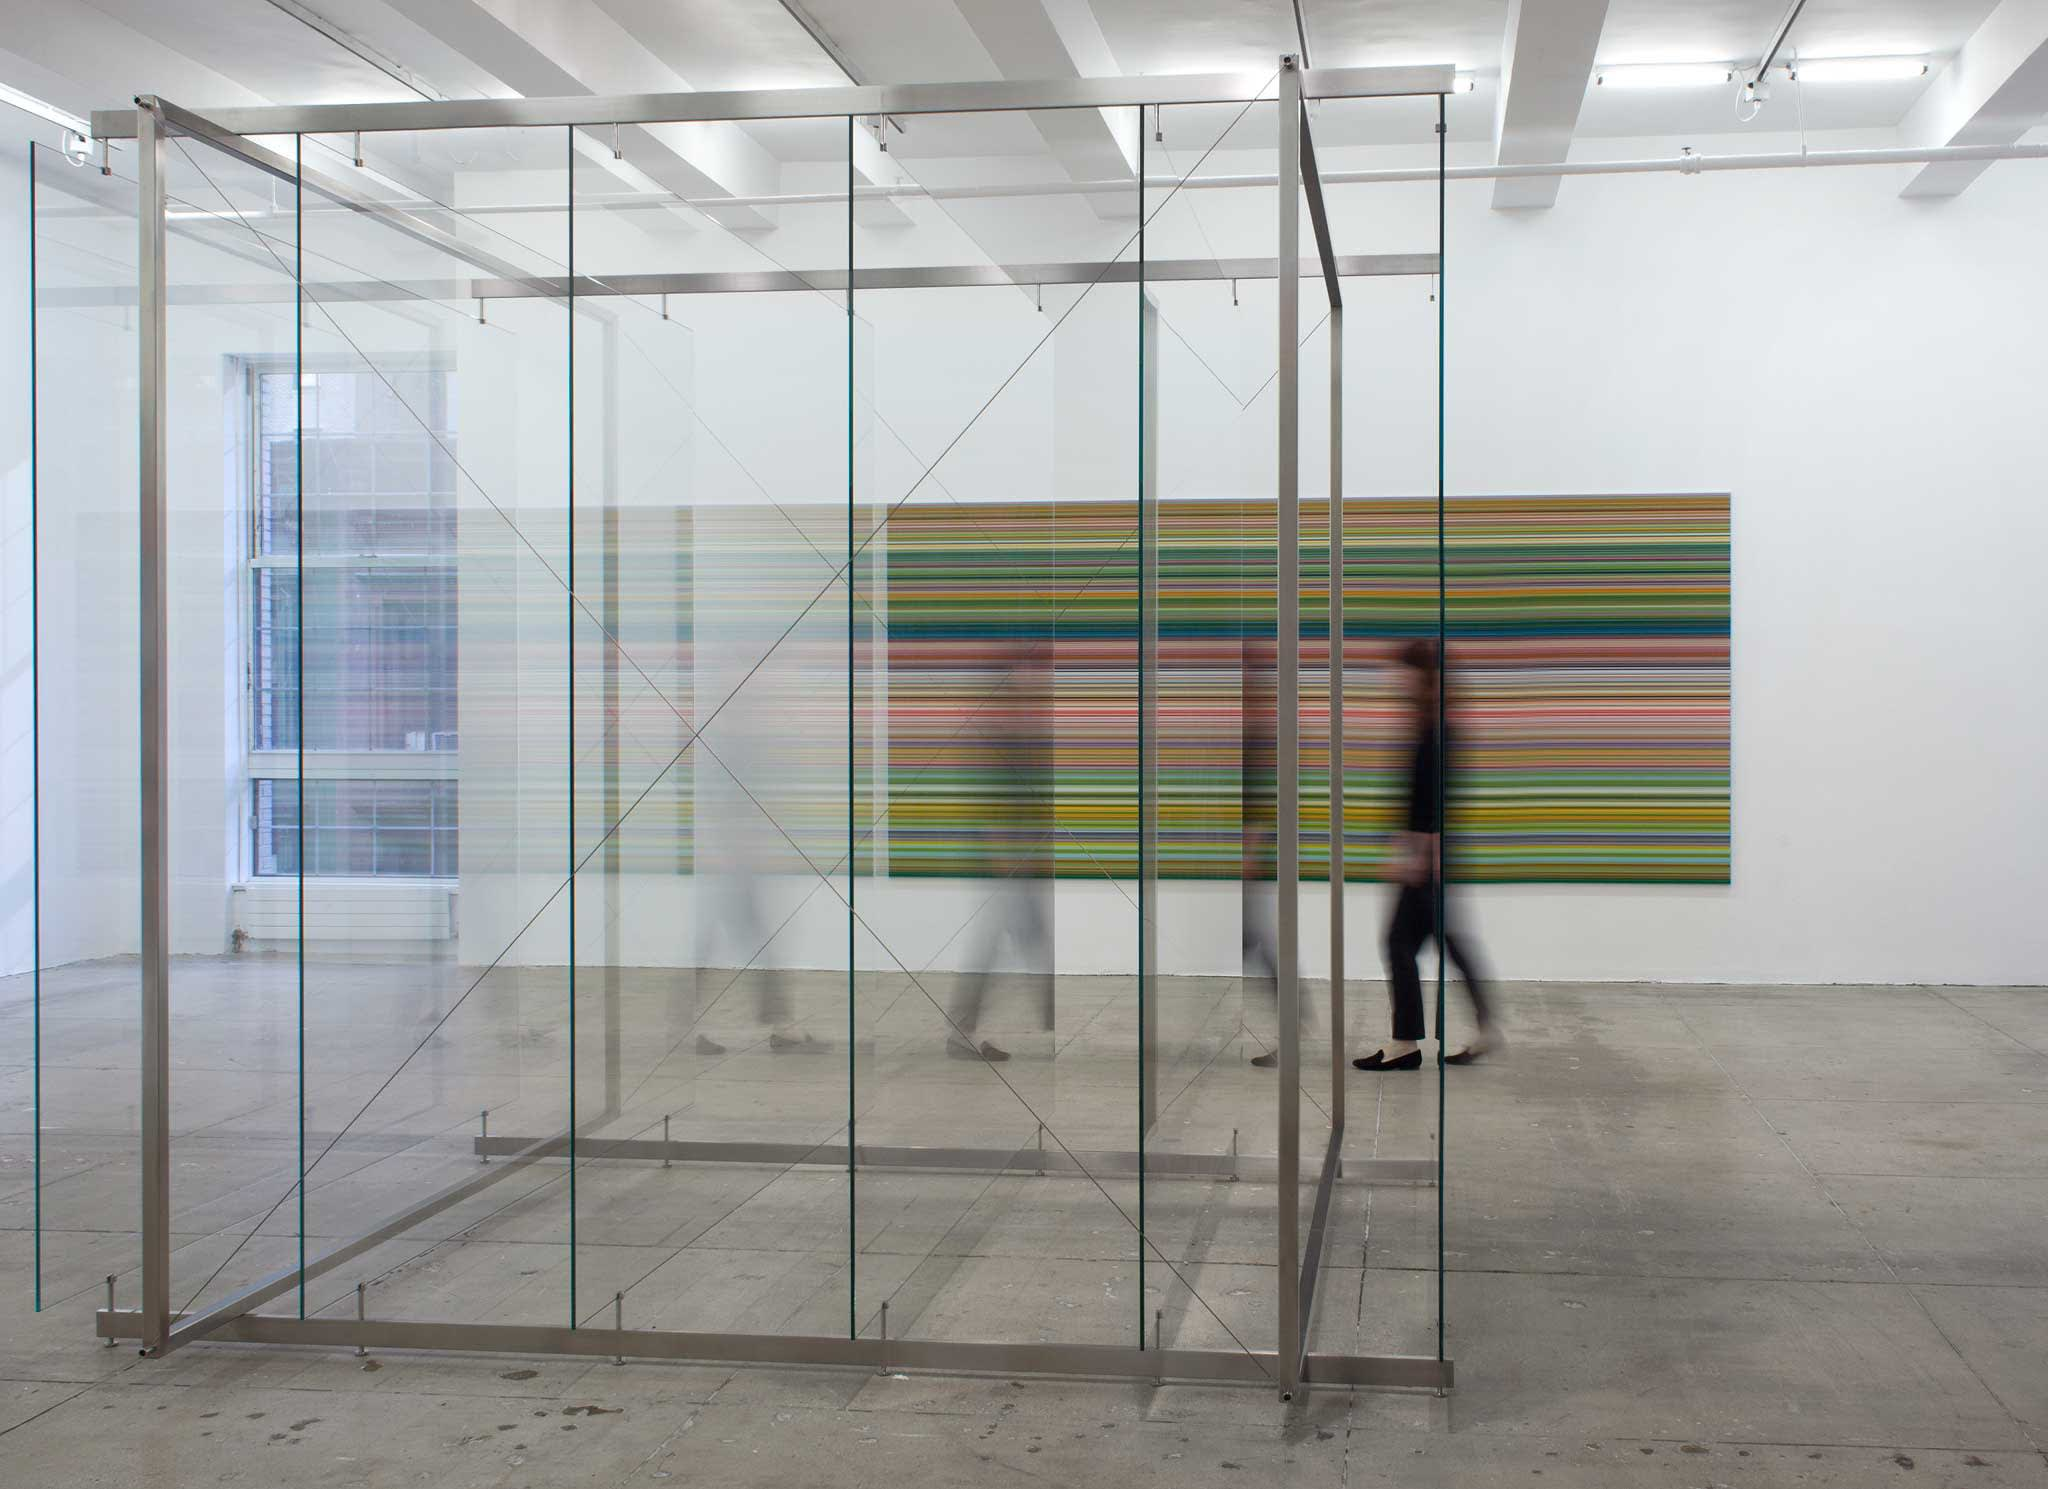 A girl walks behind a floor-to-ceiling tall sculpture made of glass and steel; behind her is a painting of yellow, green and black stripes.